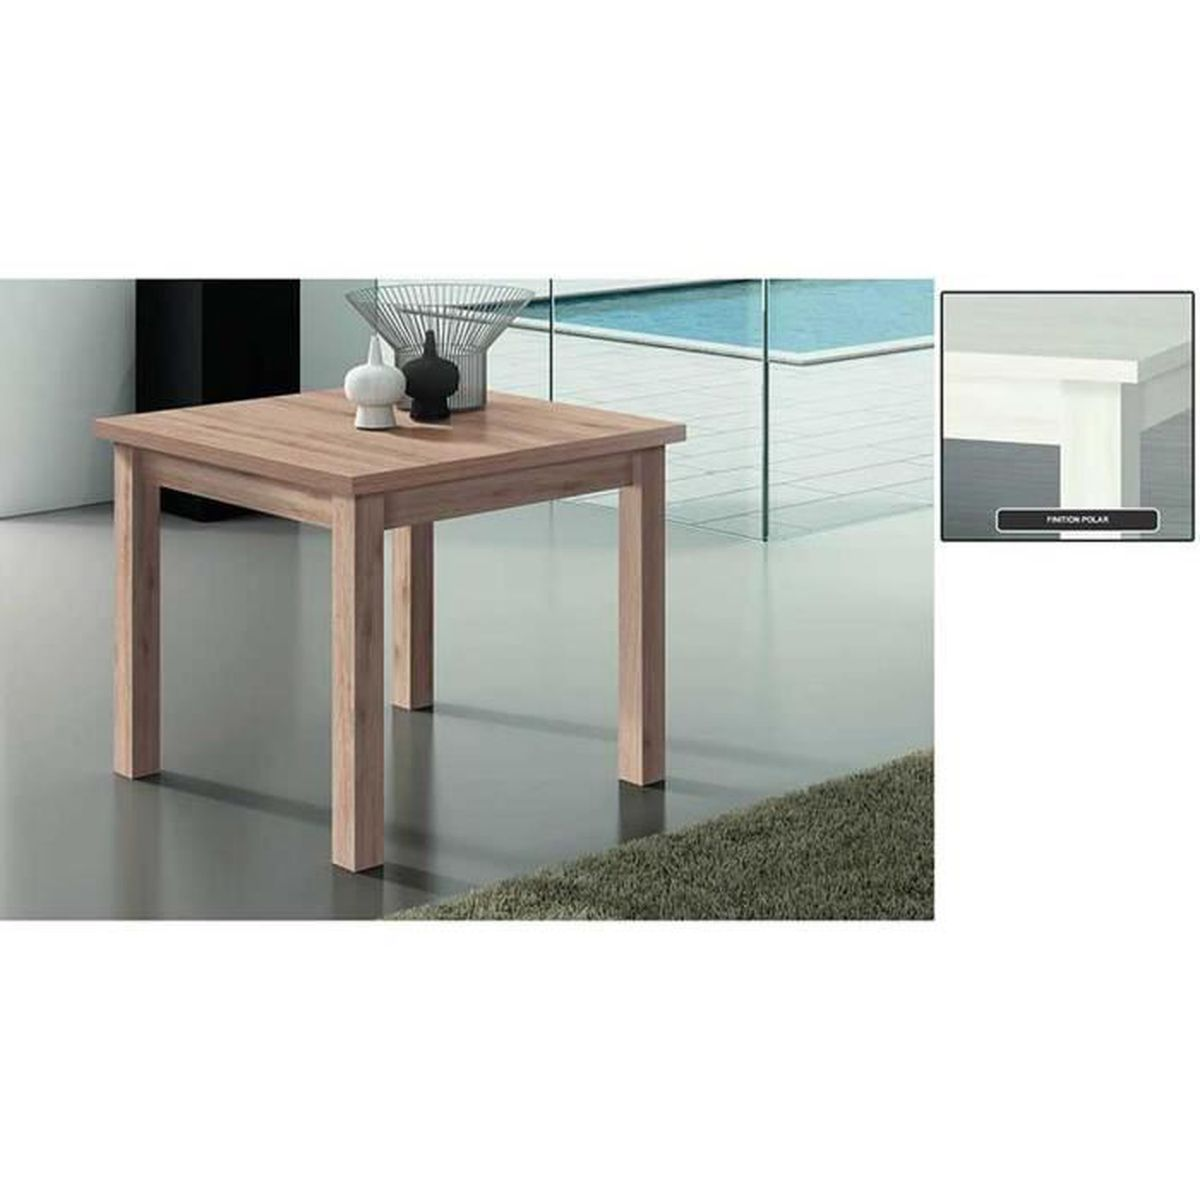 Table a manger carr e extensible 90 180 syst portefeuille for Table a manger carre extensible